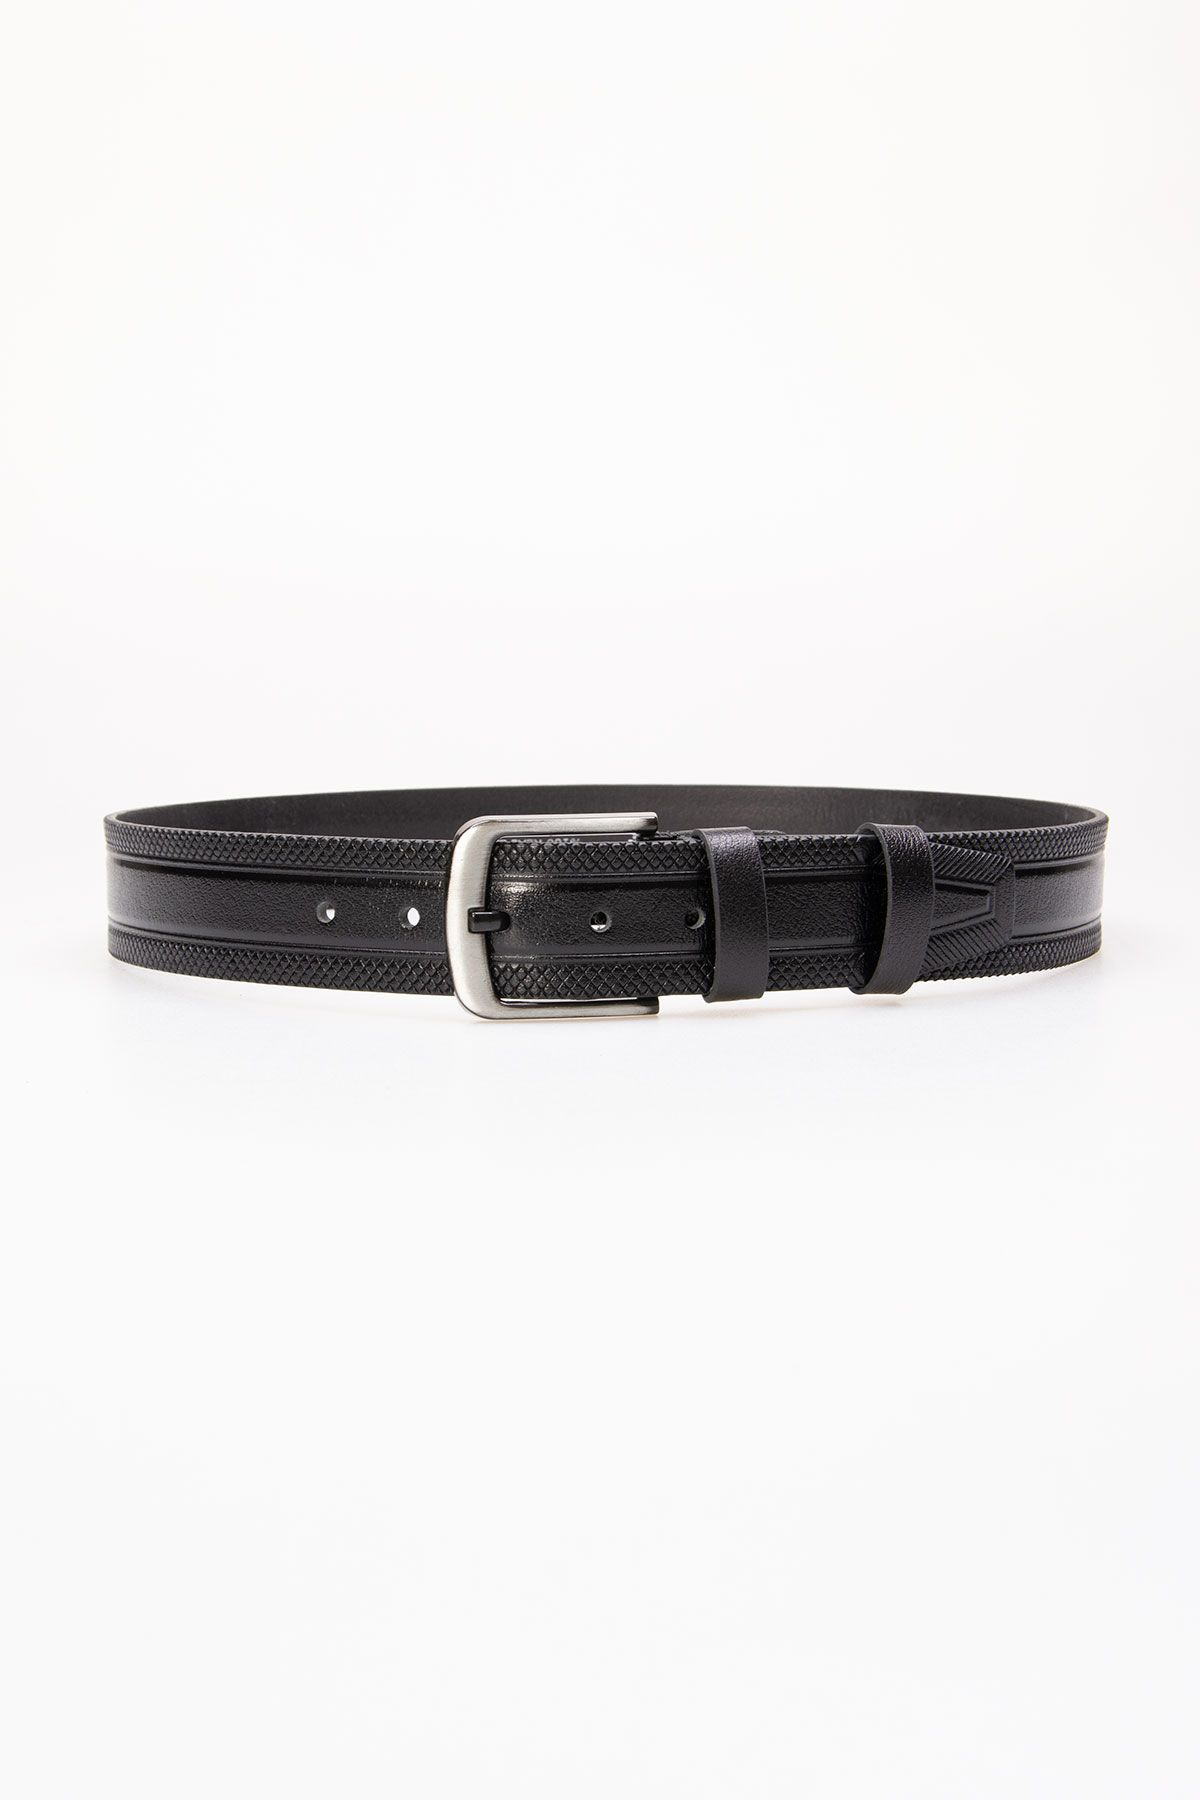 Pegia Men's Genuine Leather Belt 19KMR07 Black